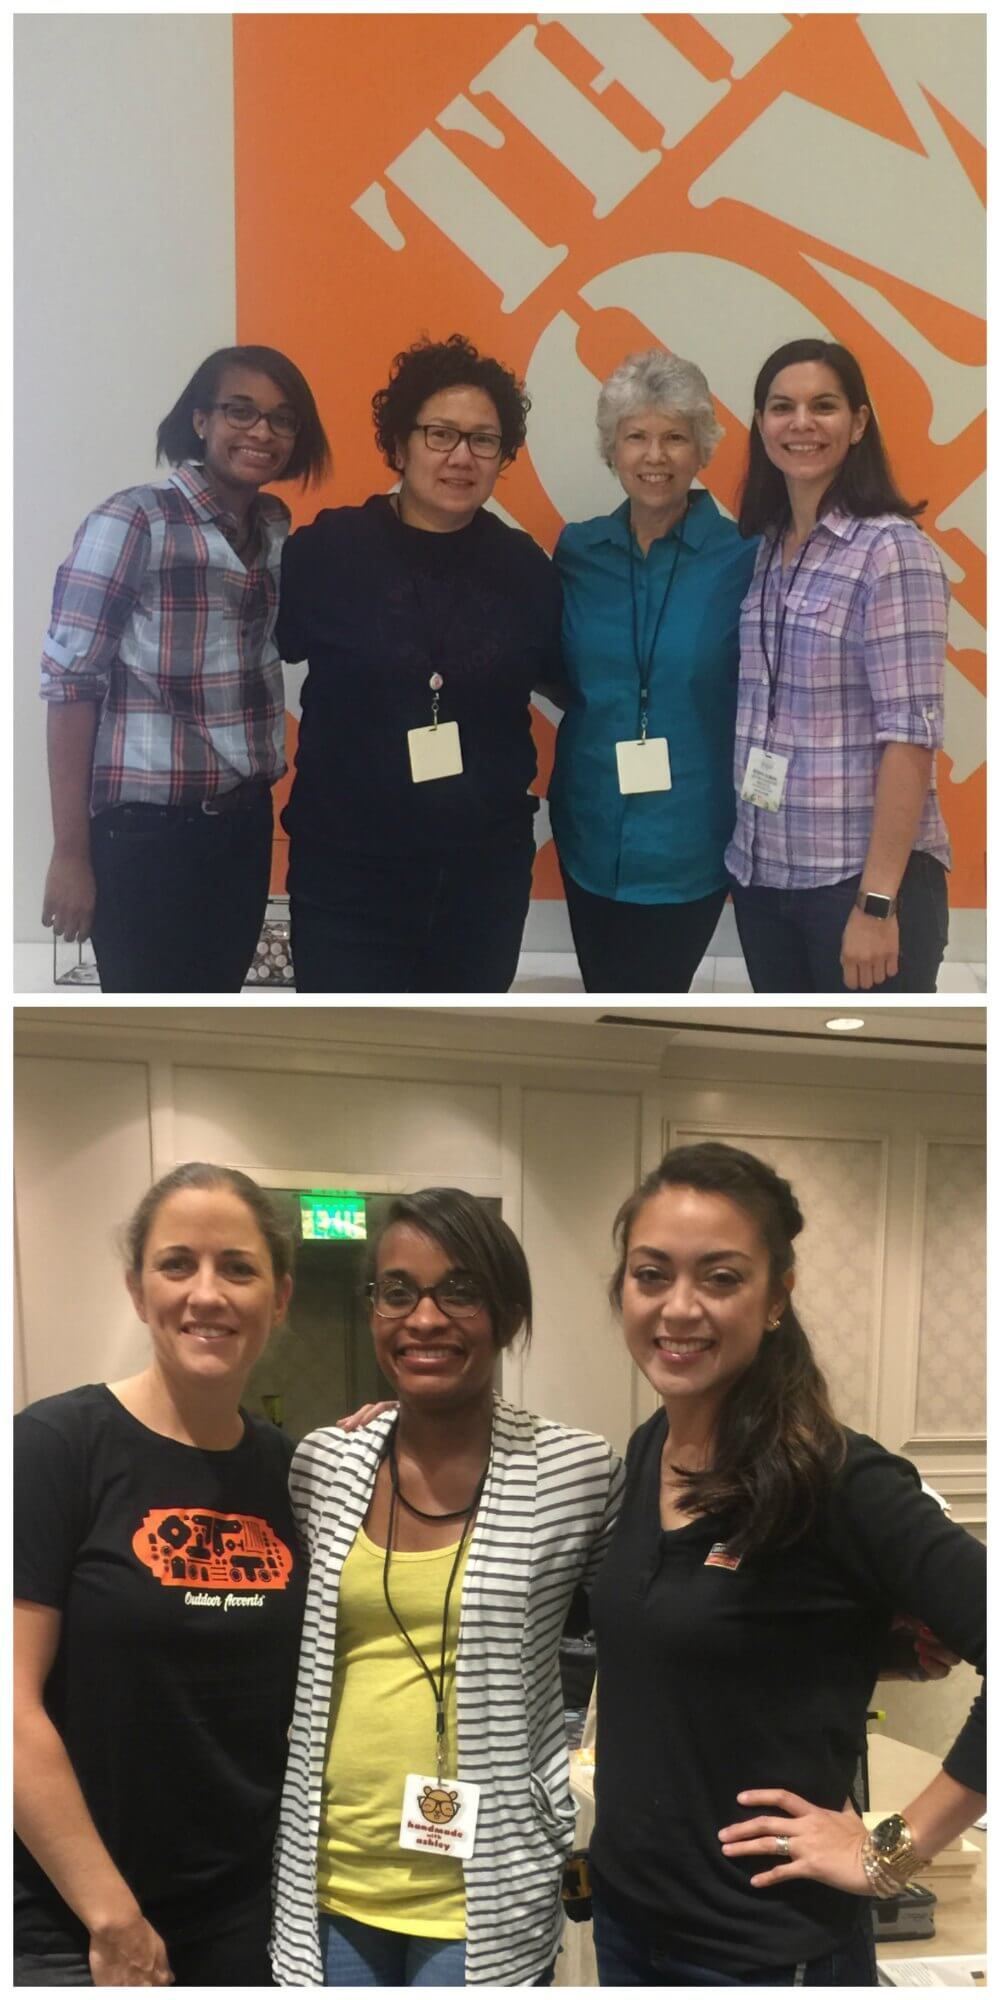 Haven Conference 2017 Recap & Review. Top photo: Me, Alma from Pink Soul Studios, Vicky and Steph from Mother Daughter Projects. Bottom photo: Jamie, me and Jen.